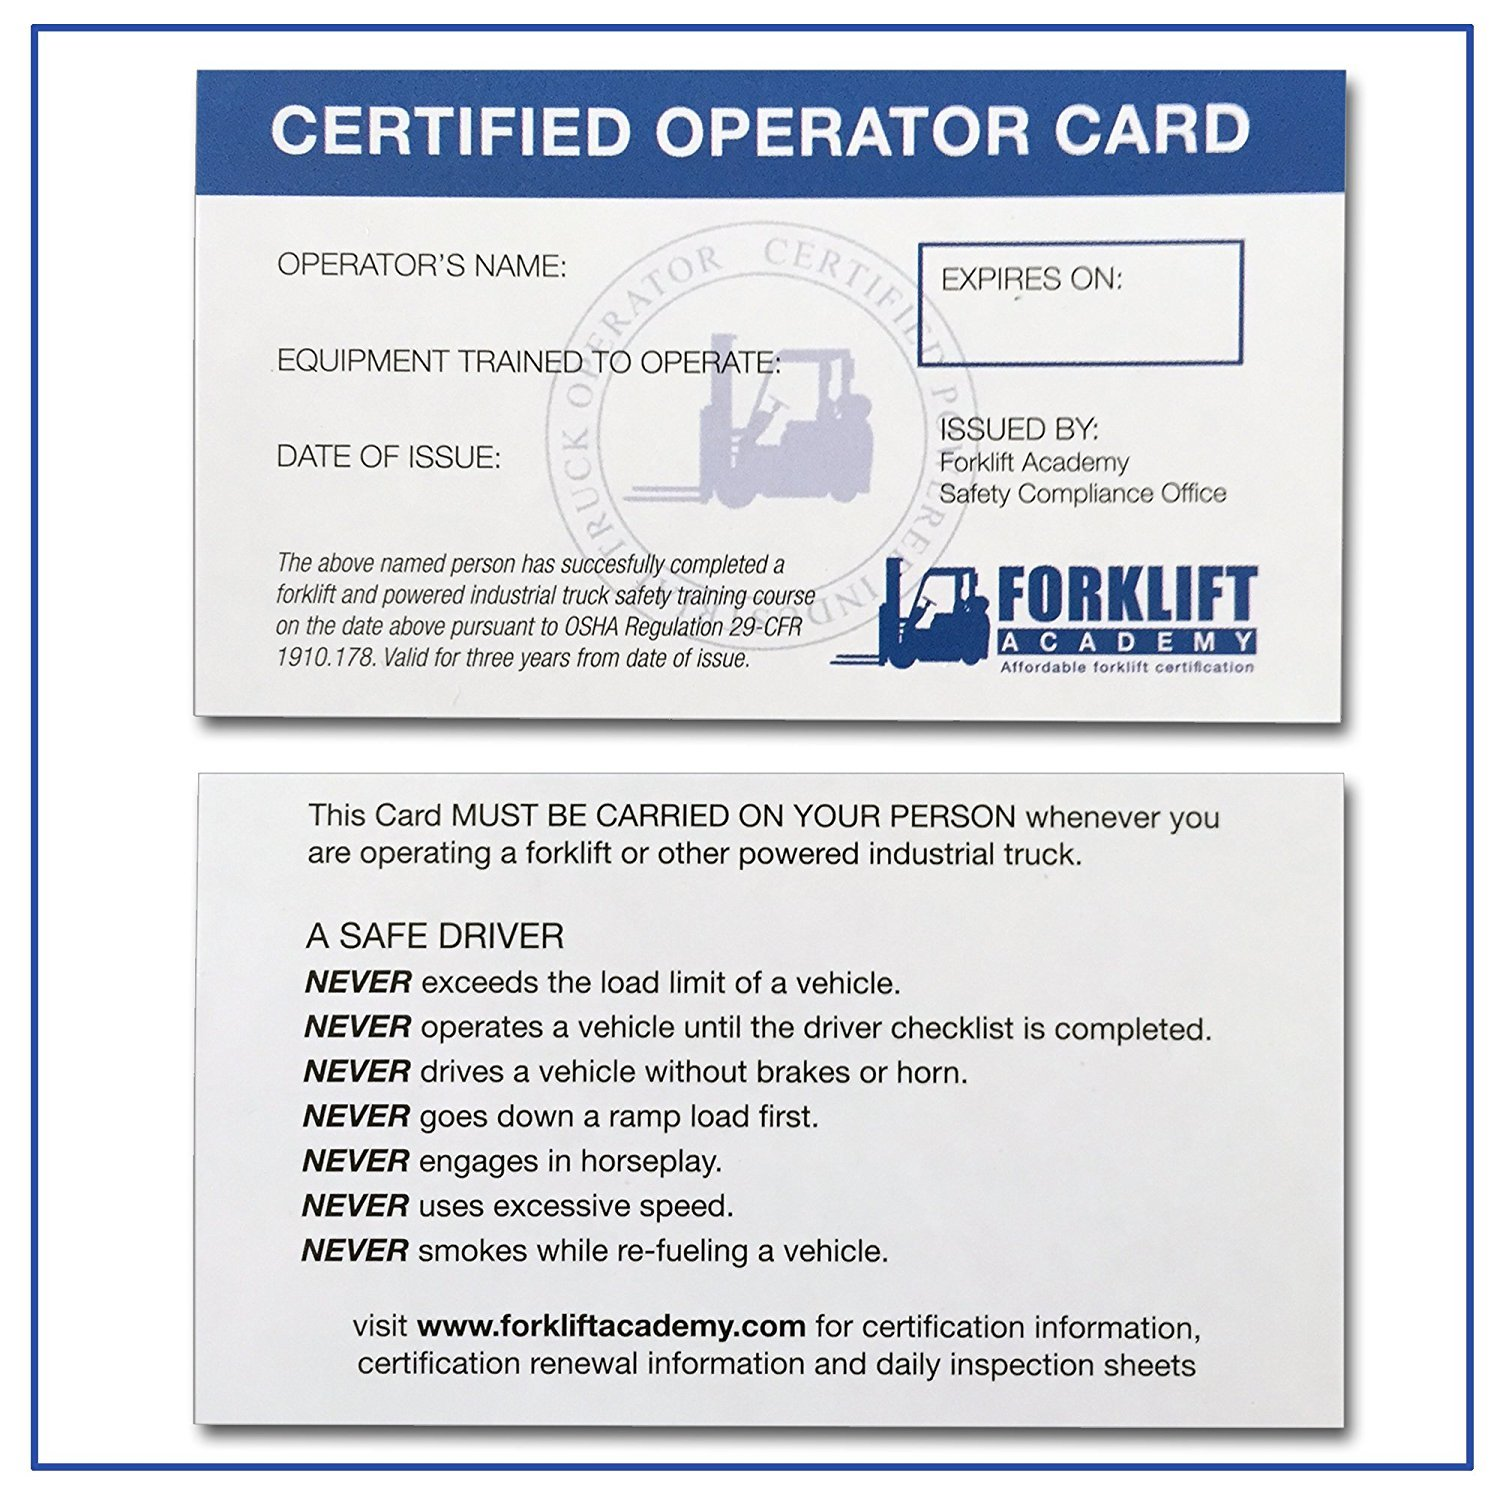 Amazon forklift certification wallet cards package of 20 amazon forklift certification wallet cards package of 20 home improvement xflitez Choice Image